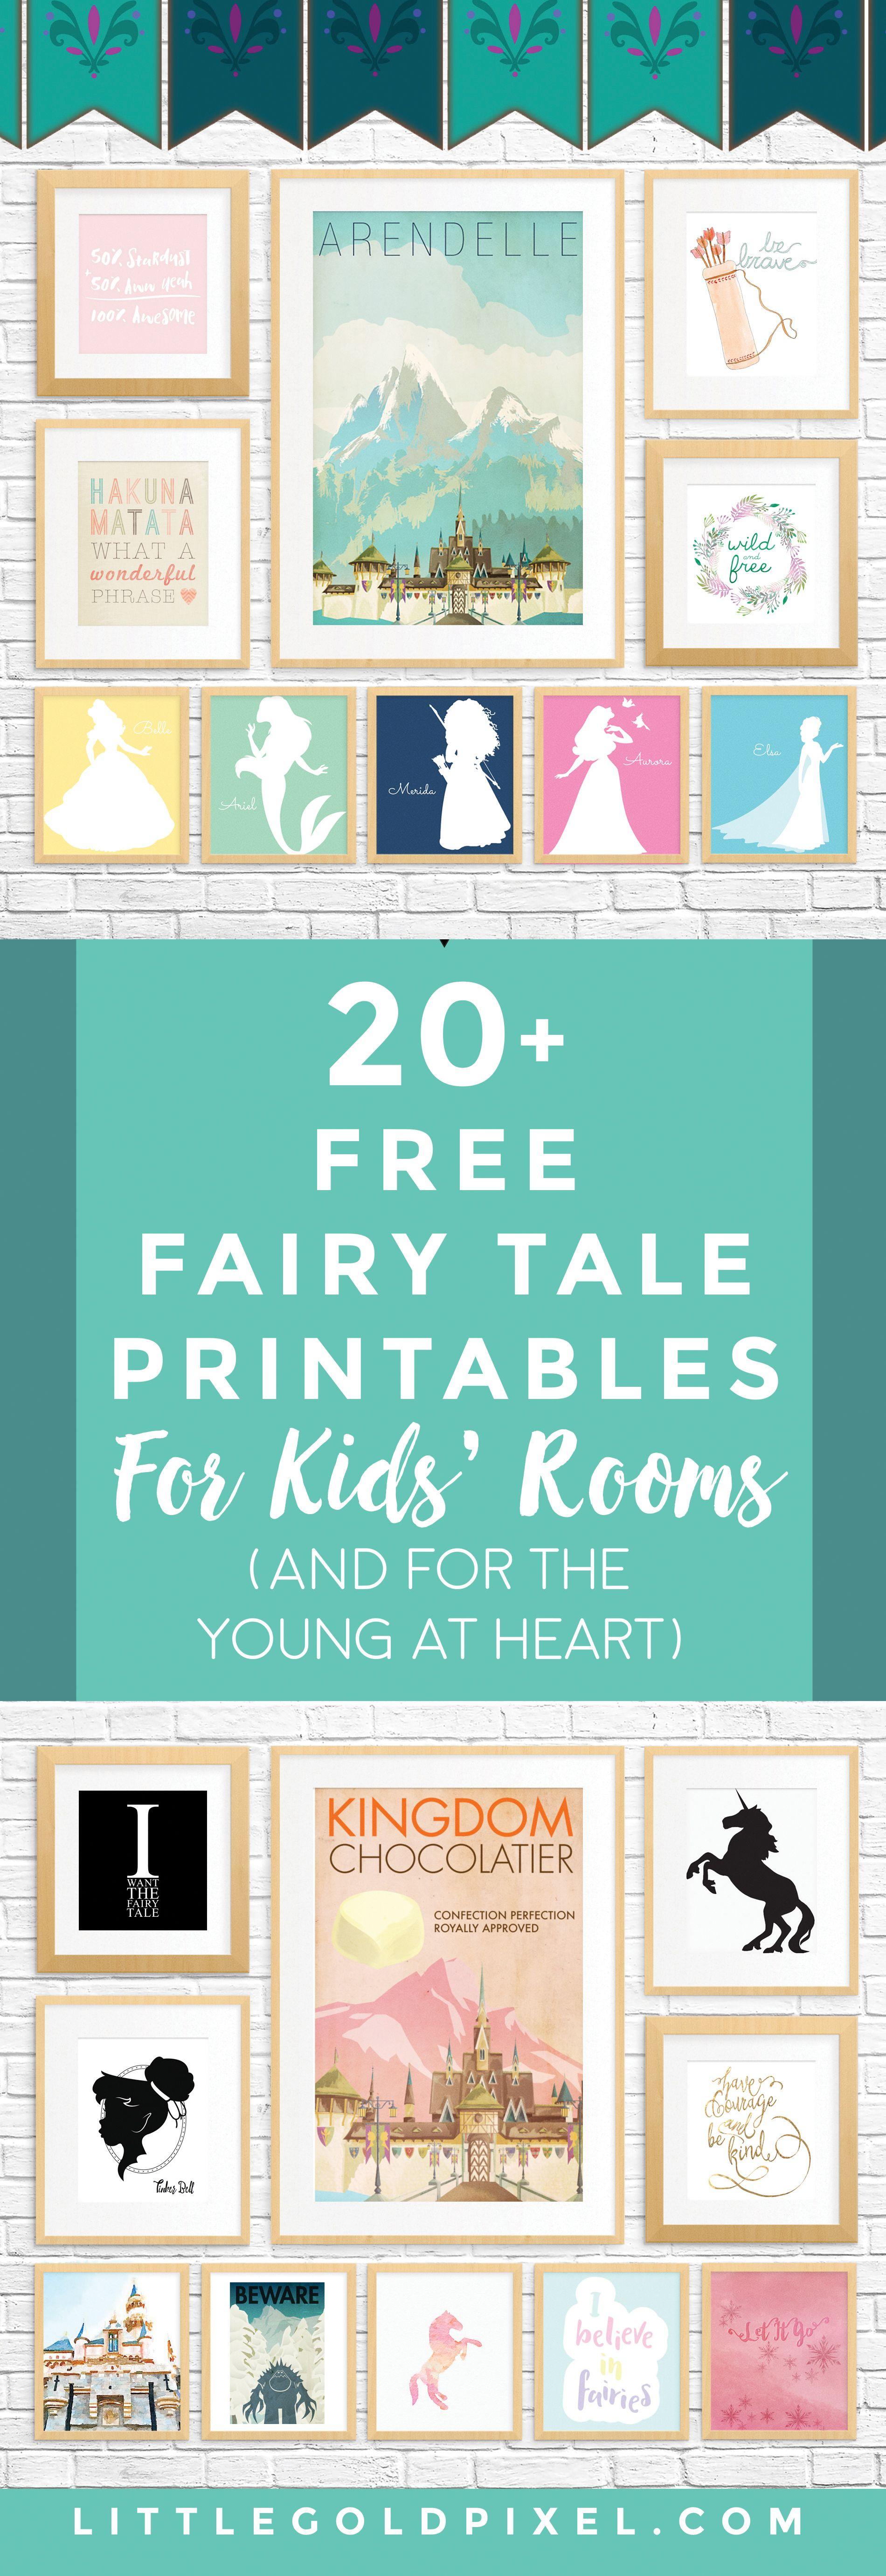 20 free fairy tale printables for kids rooms and for adults who are young at - Printable Art For Kids